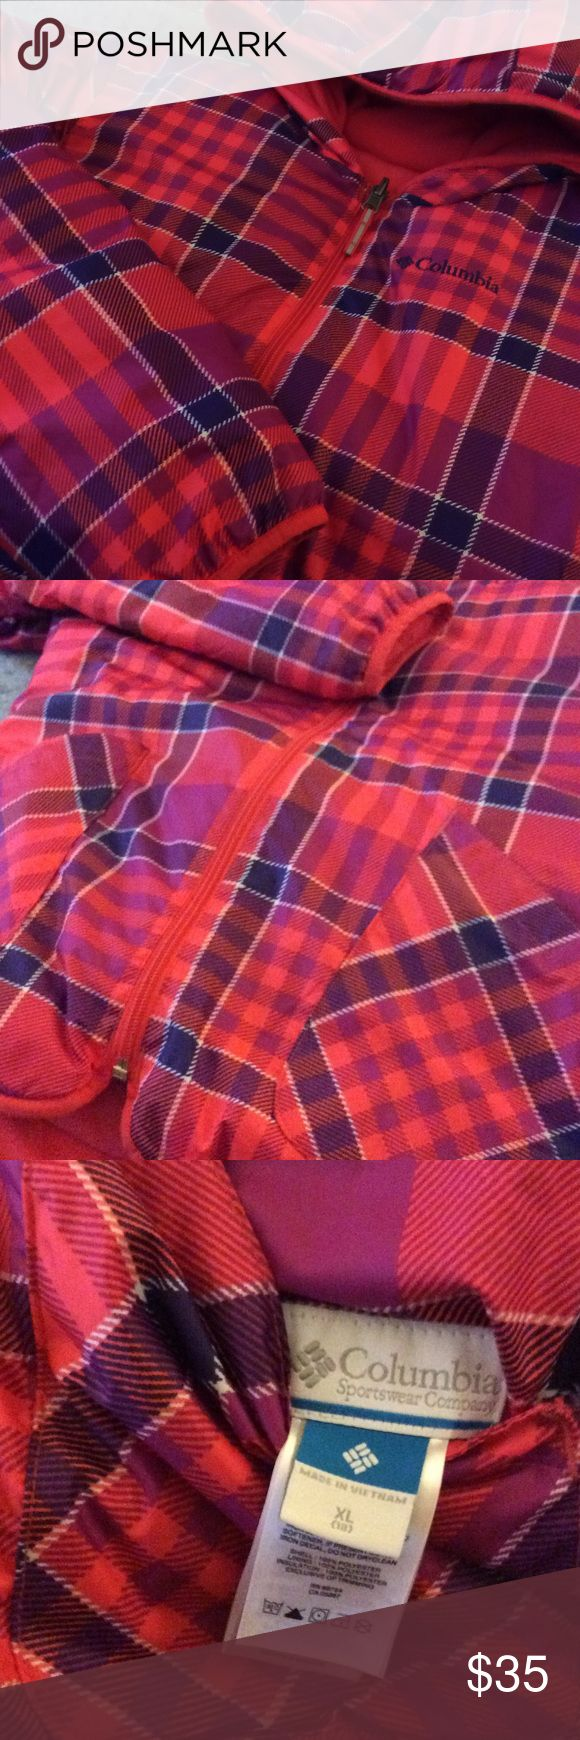 Columbia Reversable Puffer Jacket Super warm reversible Columbia puffer jacket.  One side has a warm fleece in pink and other side is a nylon plaid. Both sides have pockets too.  Girls XL (18).  Will fit a women's XS too. Has minimal wear and the edge of the sleeves show slight wear.  Priced accordingly to condition. Columbia Jackets & Coats Puffers